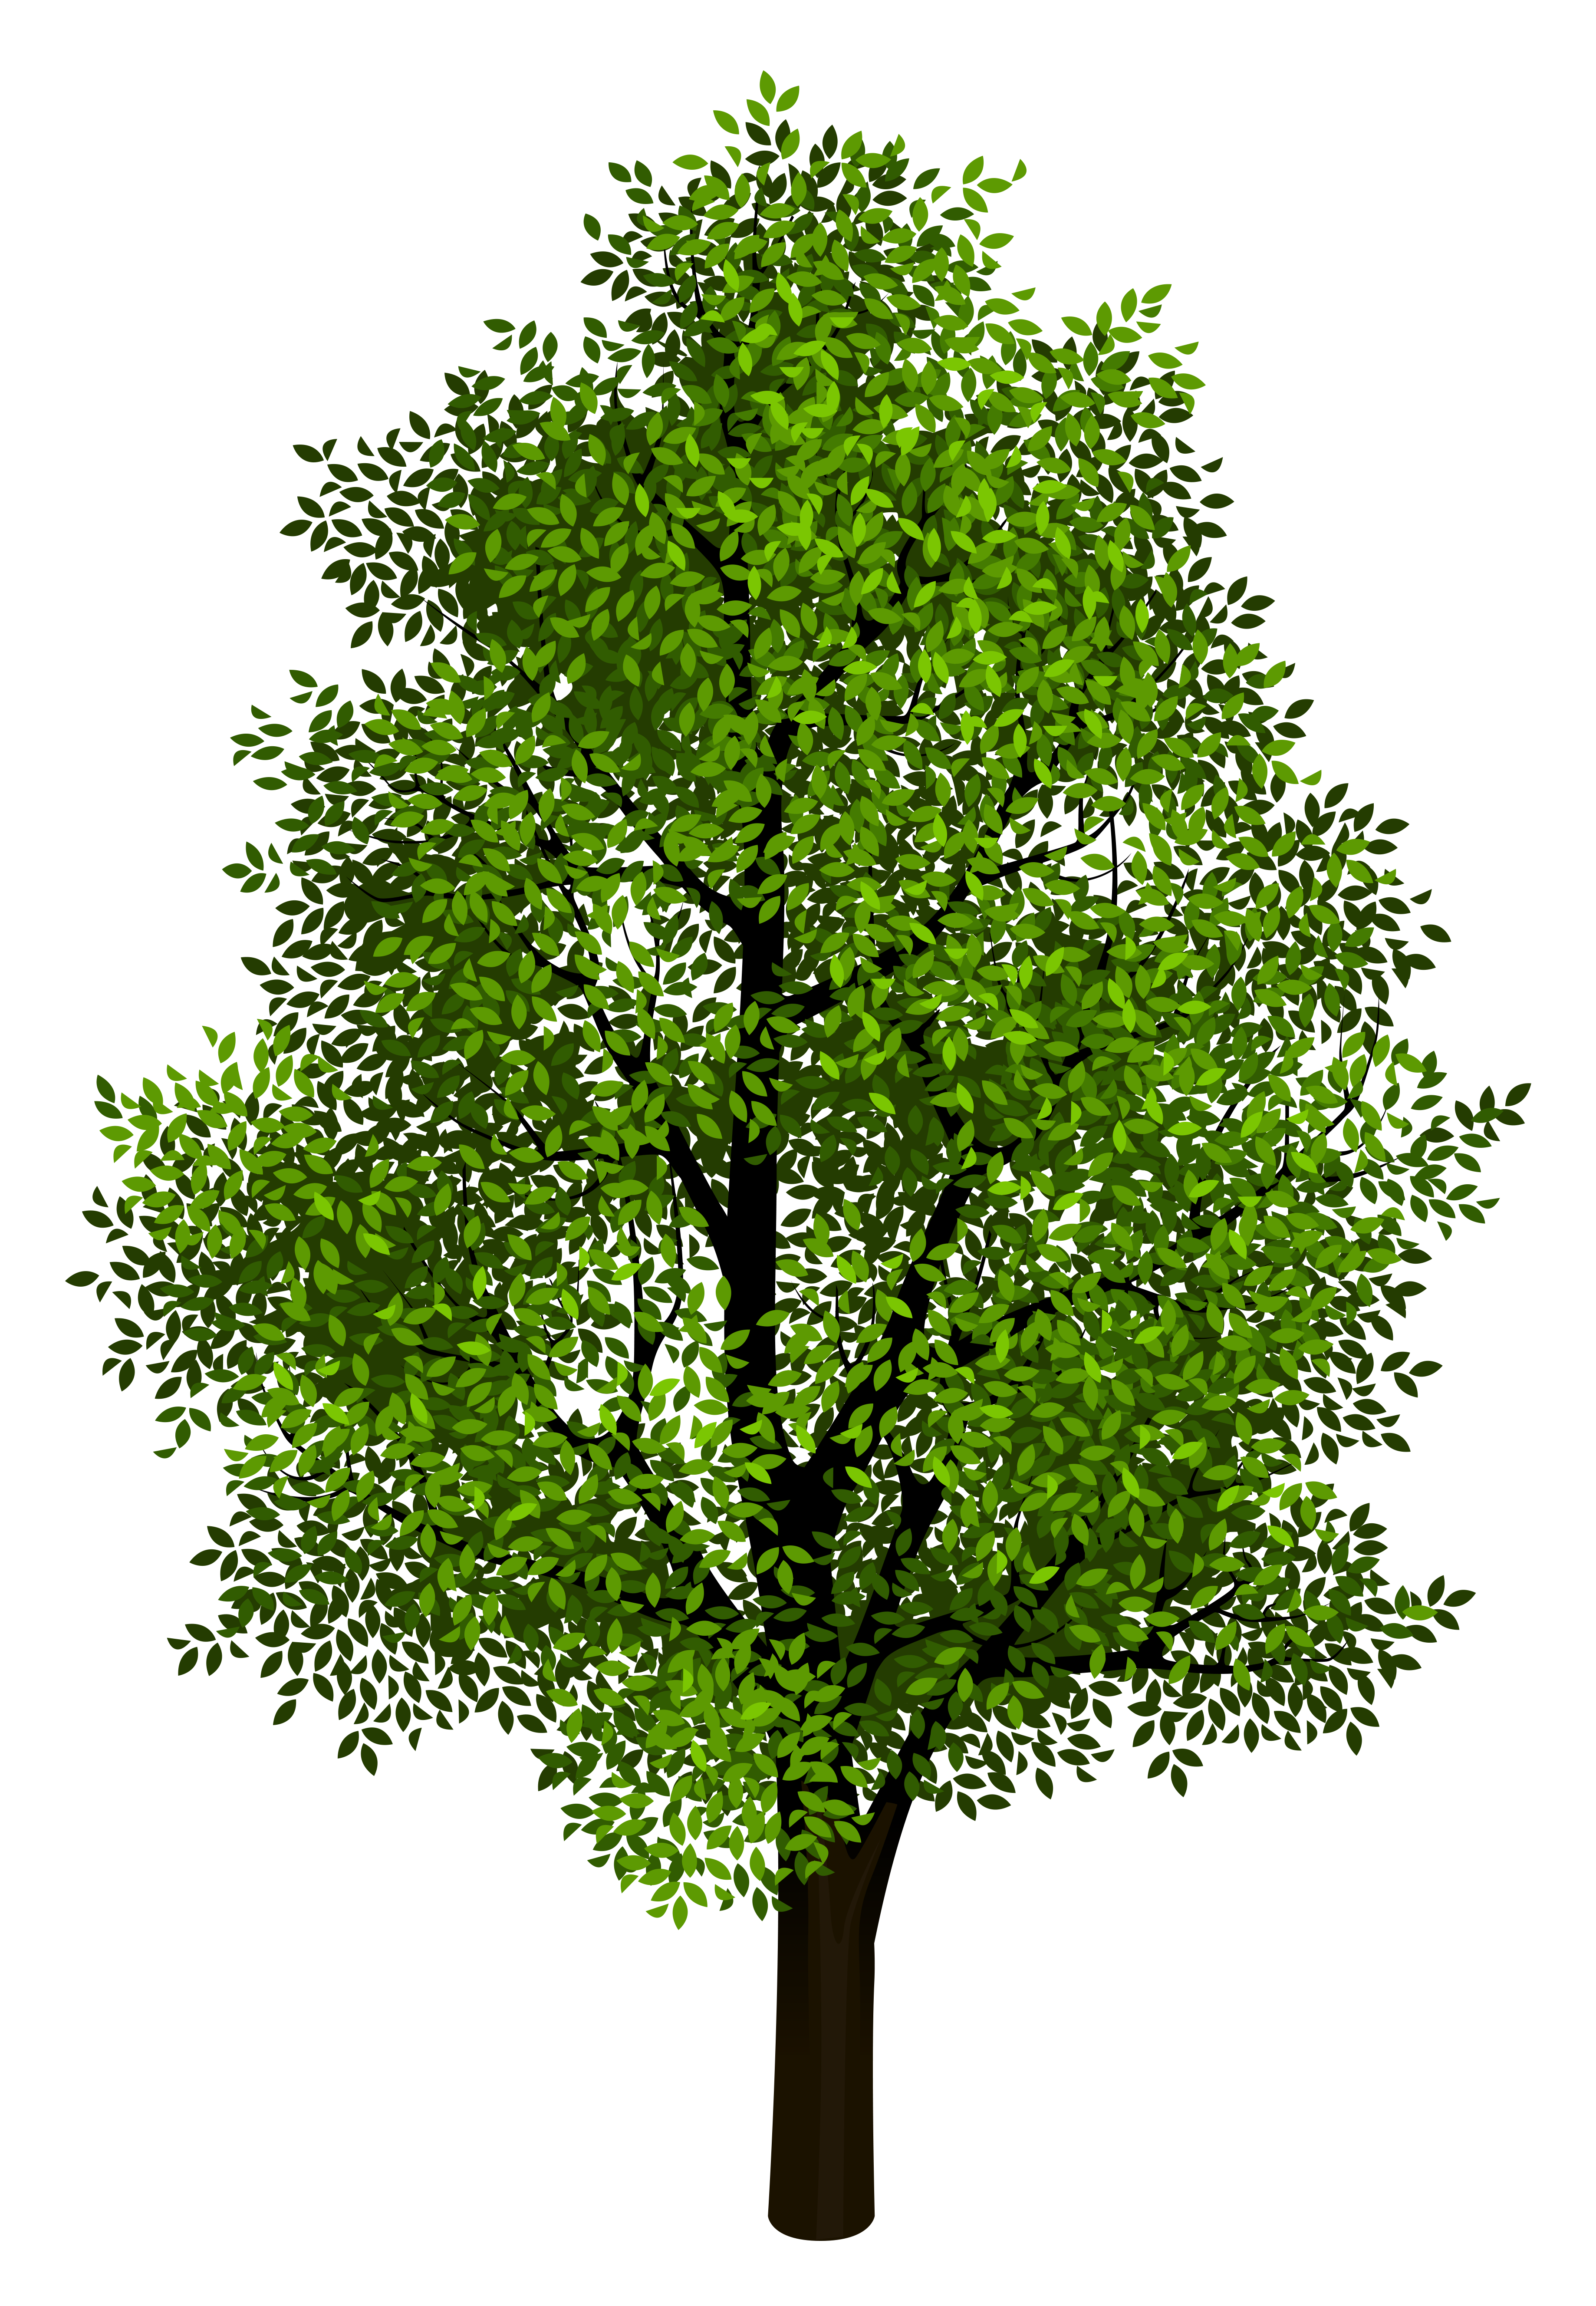 Green tree transparent picture. Grass clipart shrub